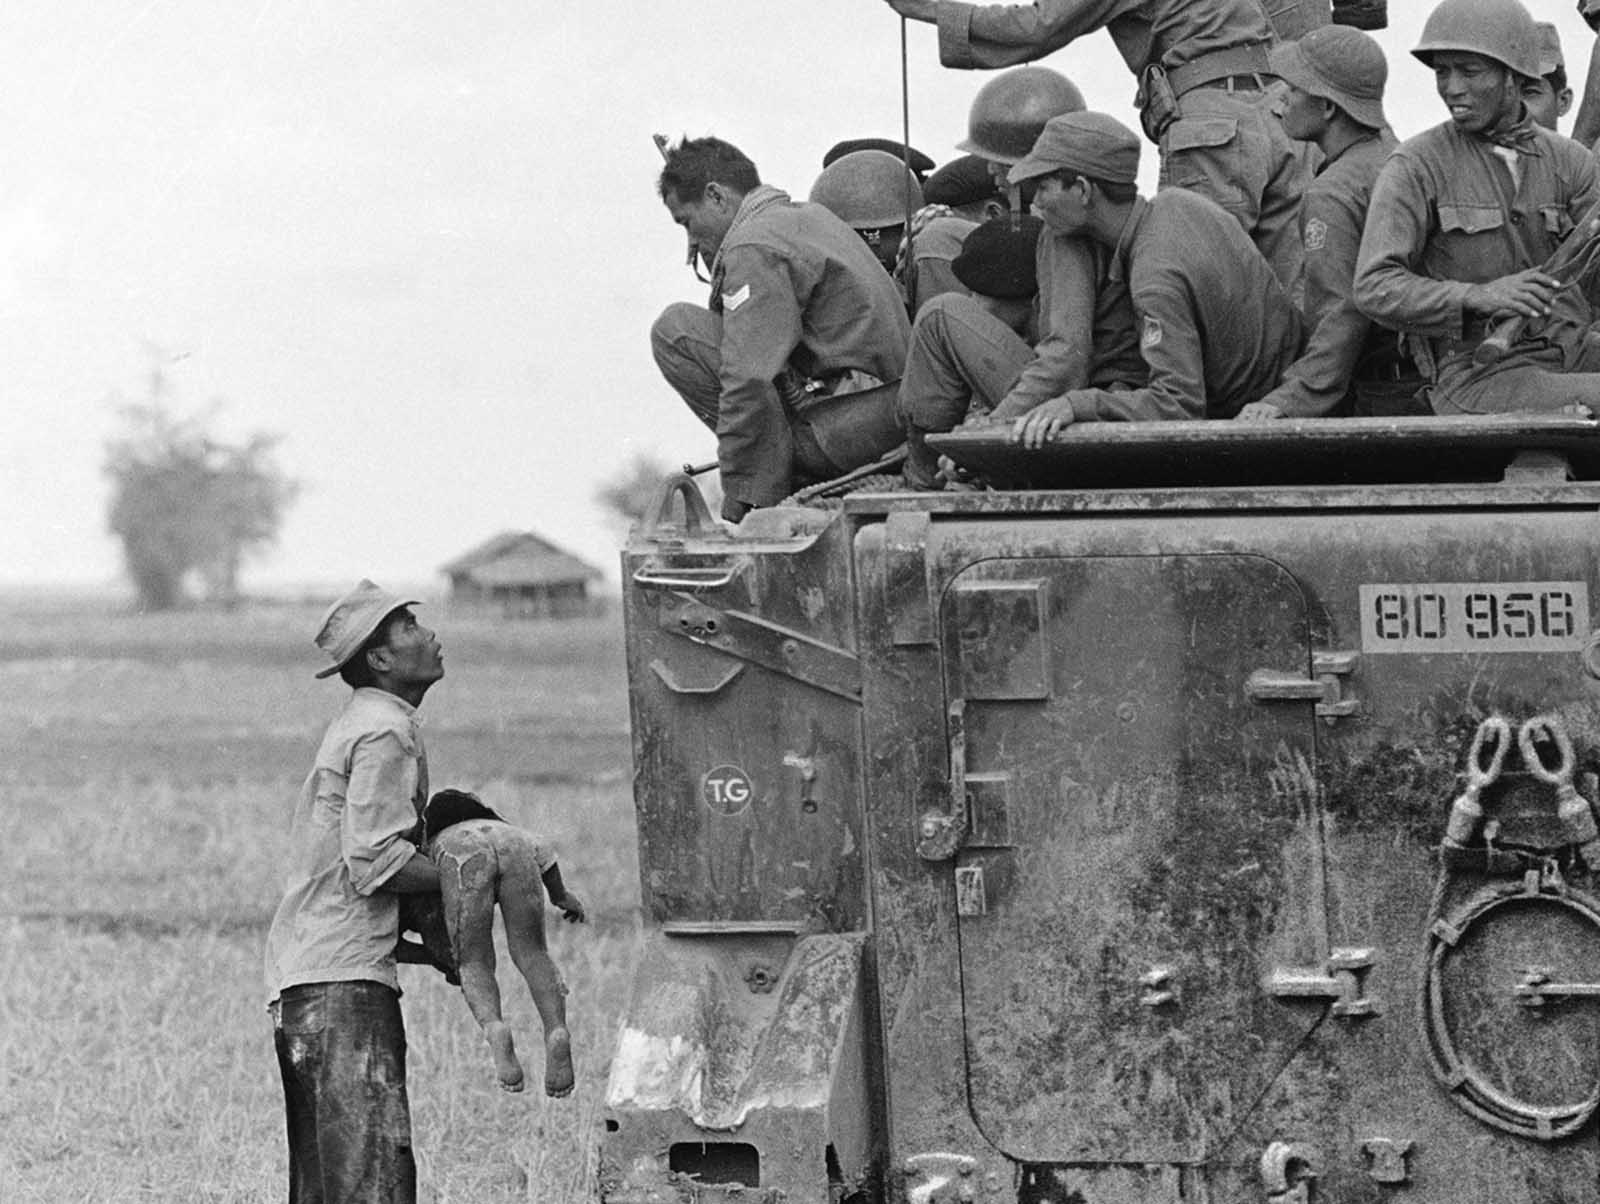 A father holds the body of his child as South Vietnamese Army Rangers look down from their armored vehicle on March 19, 1964. The child was killed as government forces pursued guerrillas into a village near the Cambodian border.